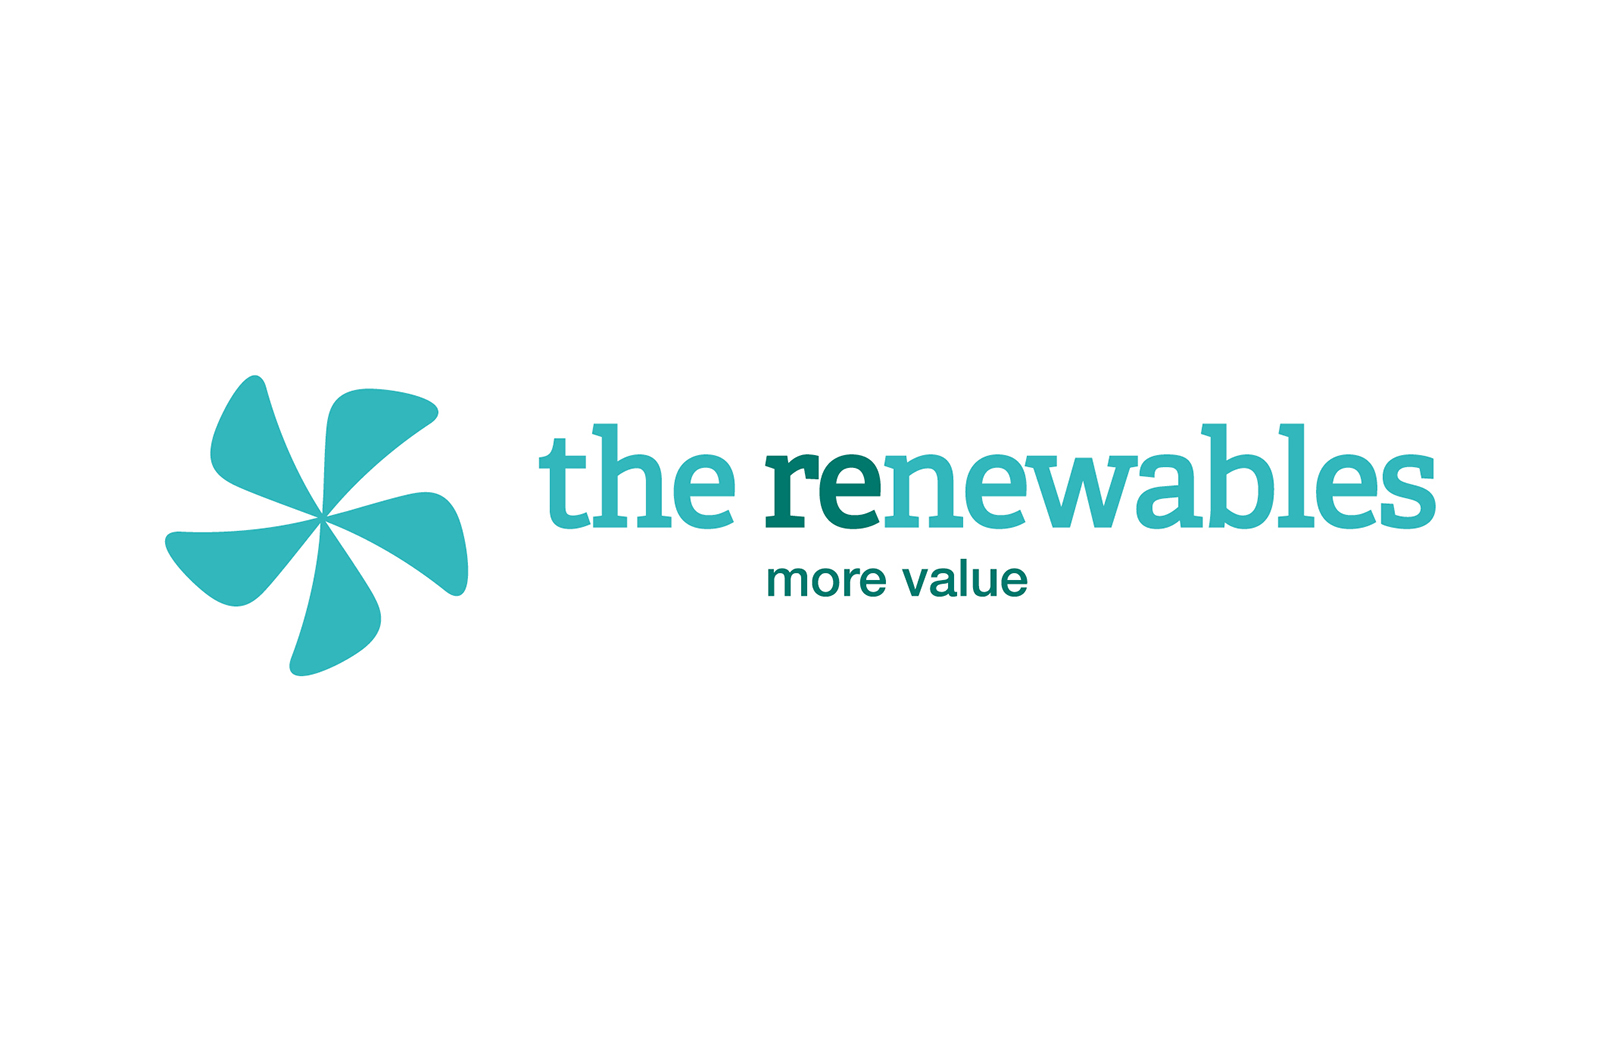 The Renewables